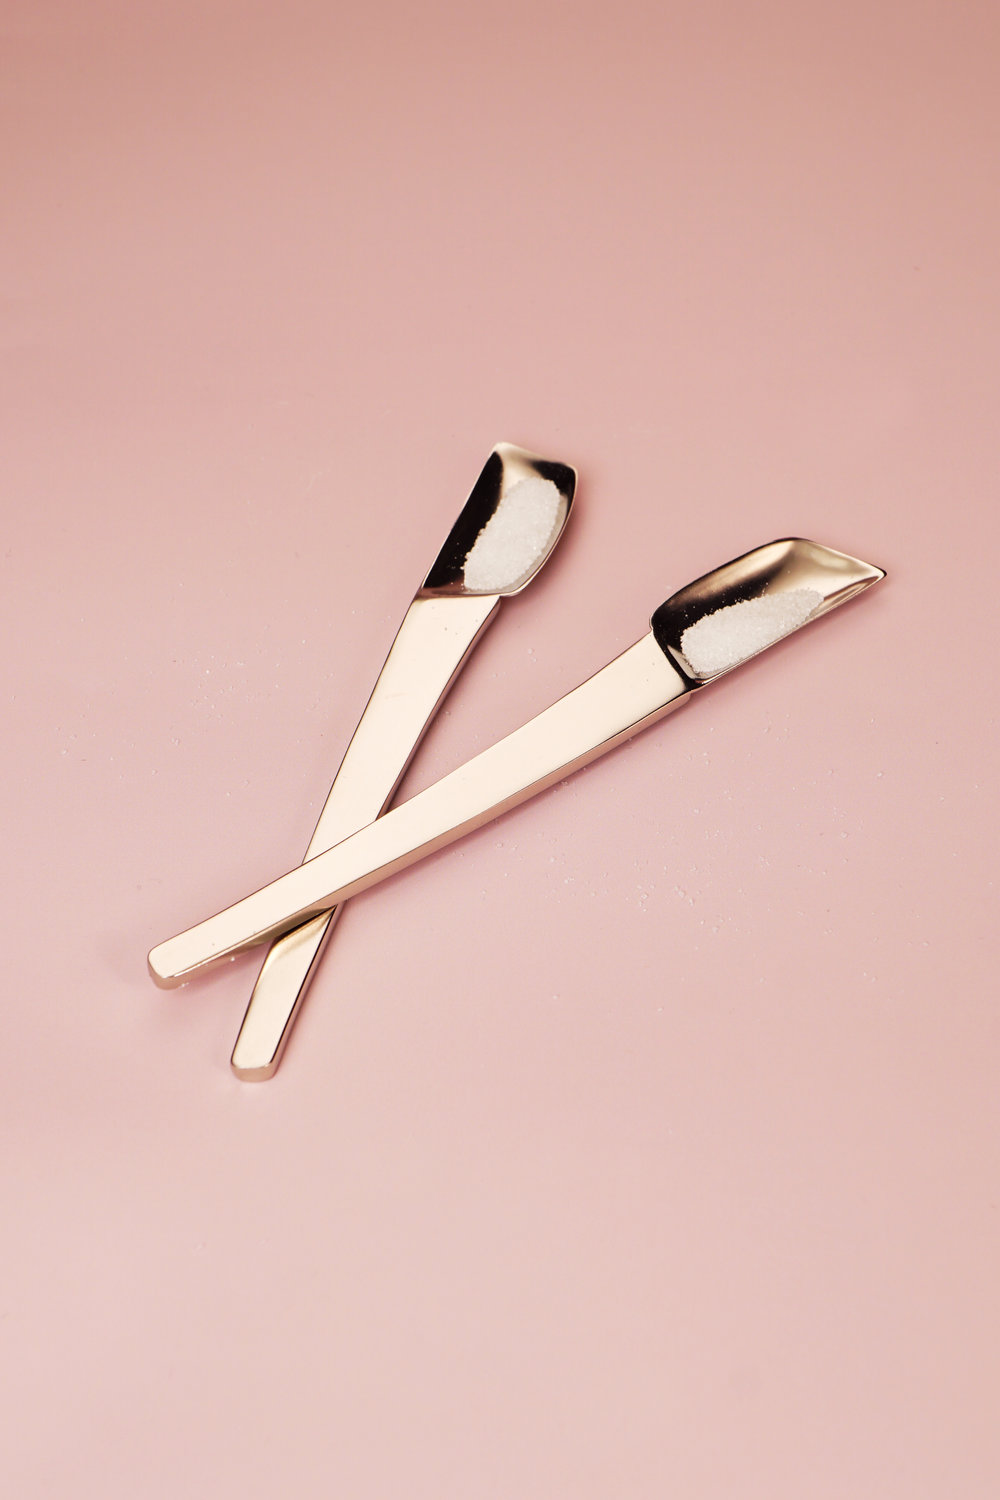 Twins Demitasse Spoons